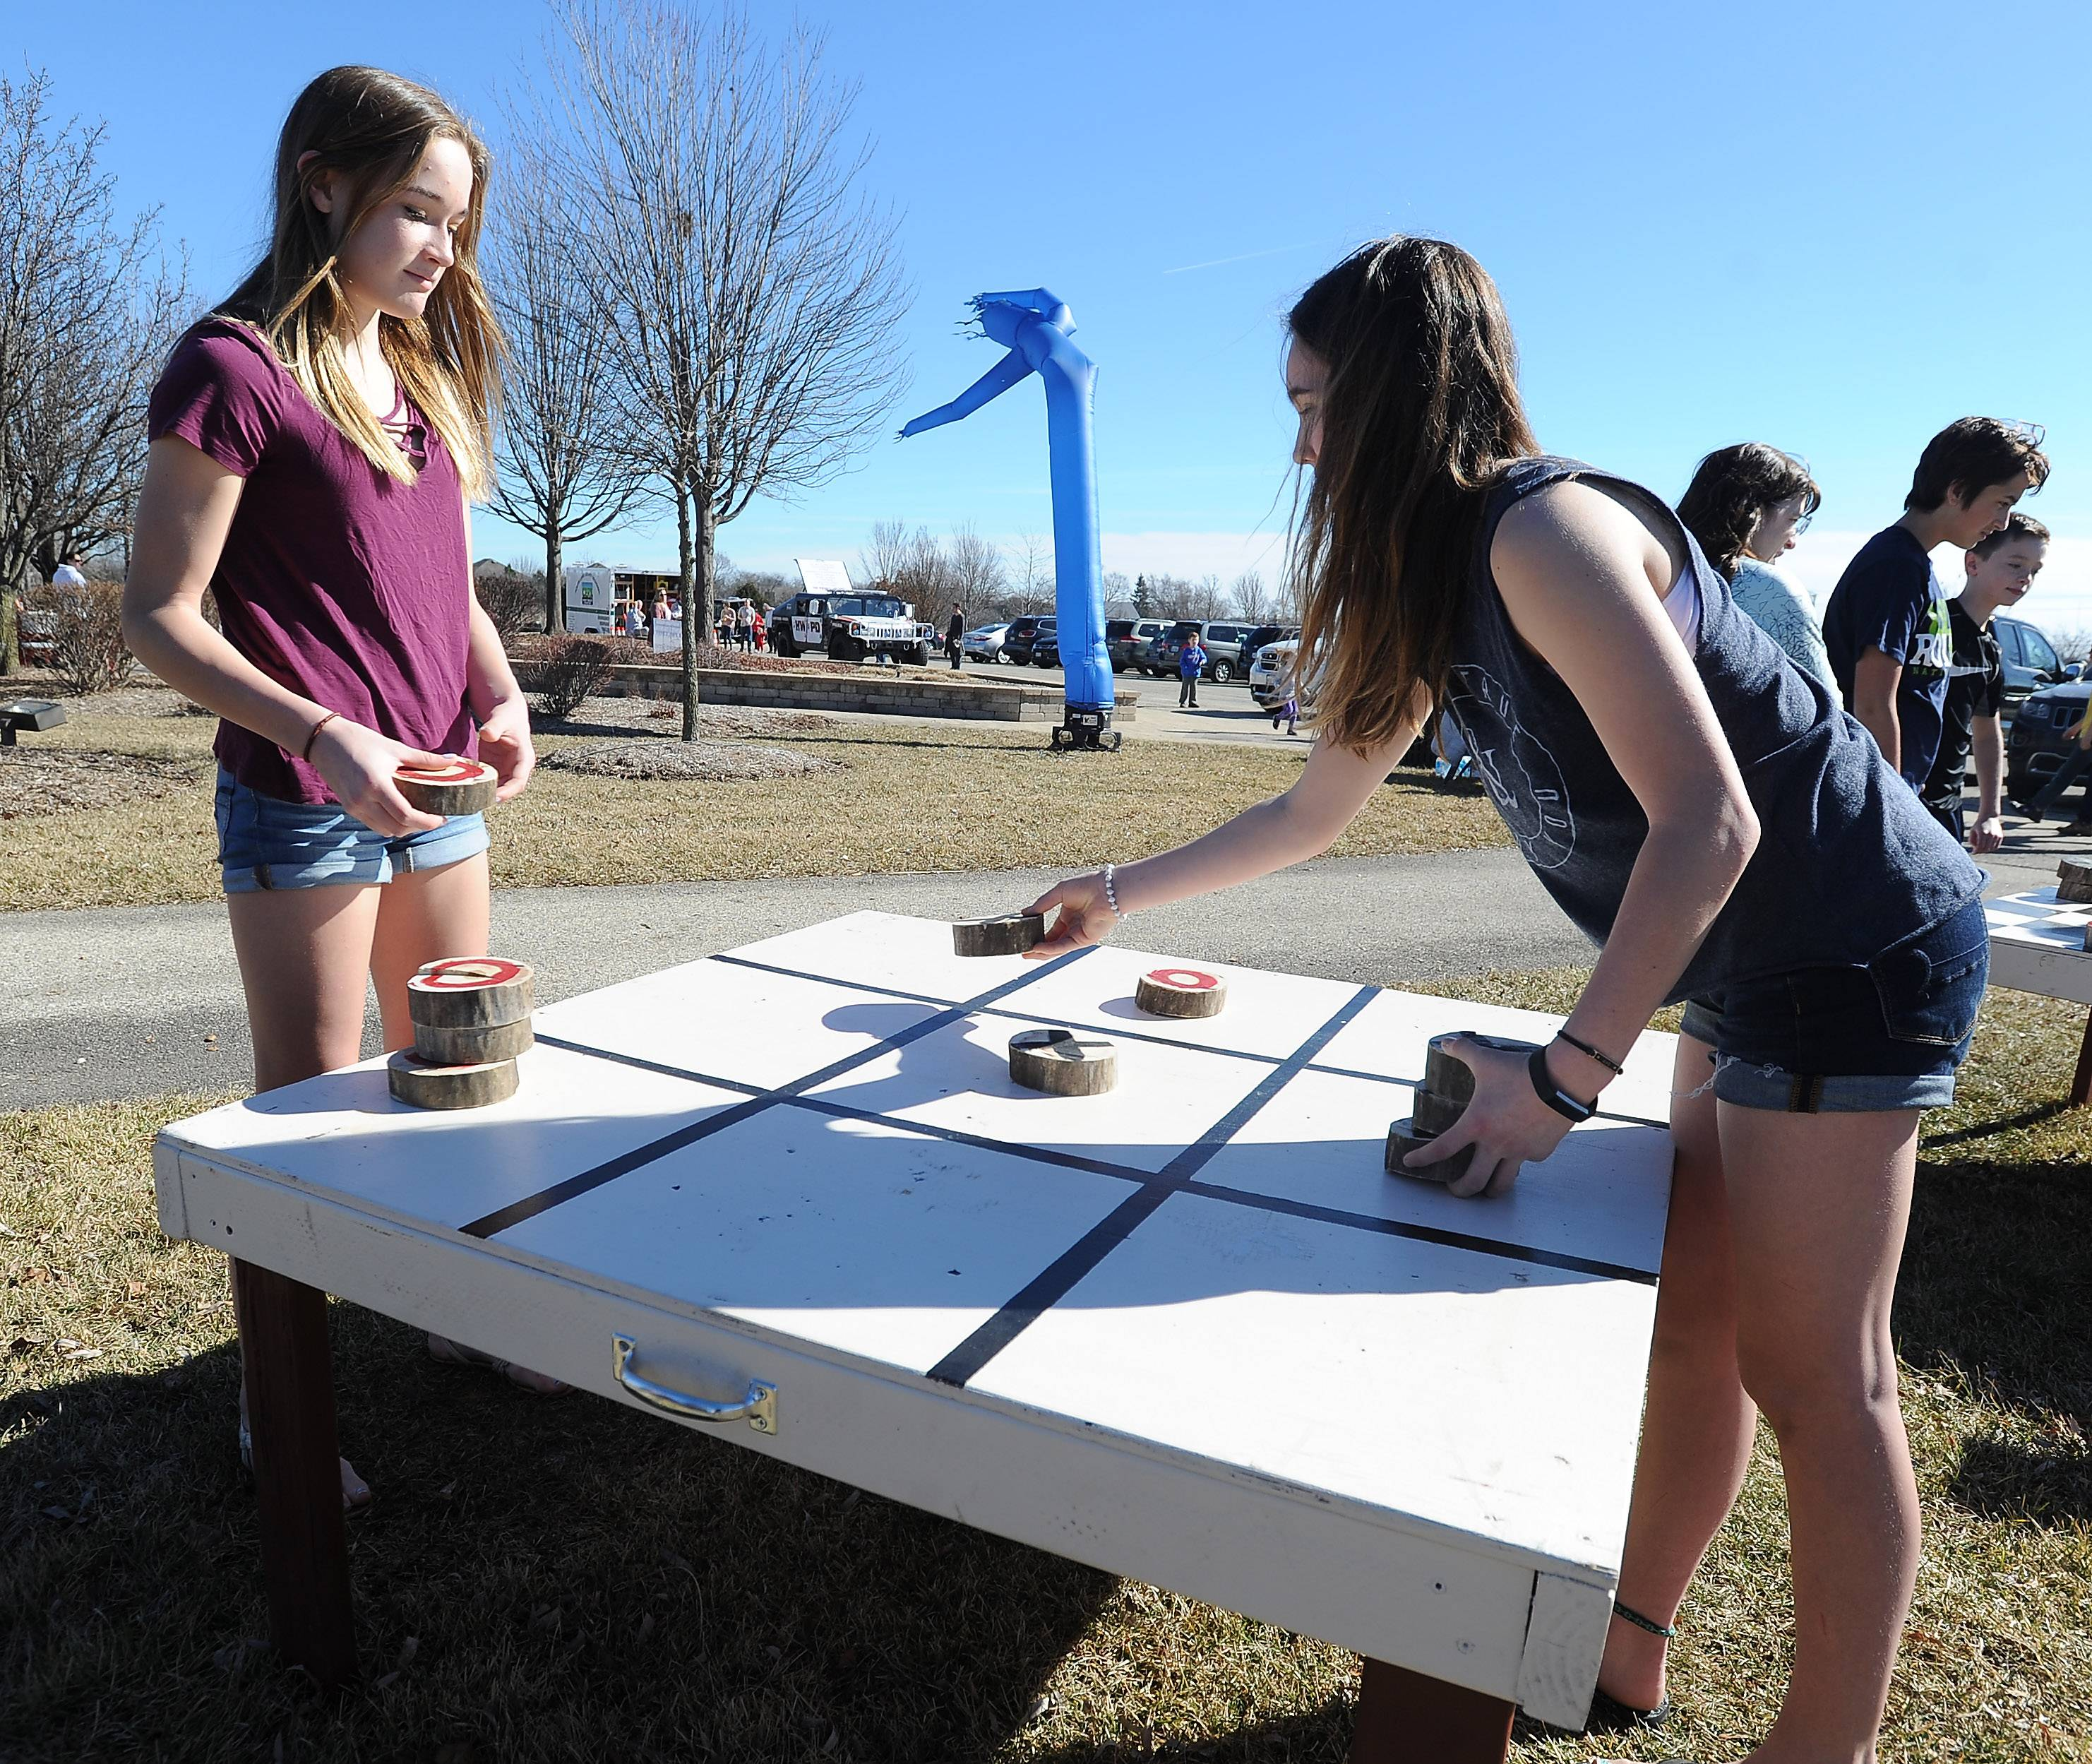 Taylor Meents, 15, and her sister Samantha, 14, of Hawthorn Woods play tick-tac-toe in their shorts in very spring-like conditions on Saturday at the Hawthorn Woods Winter Carnival.